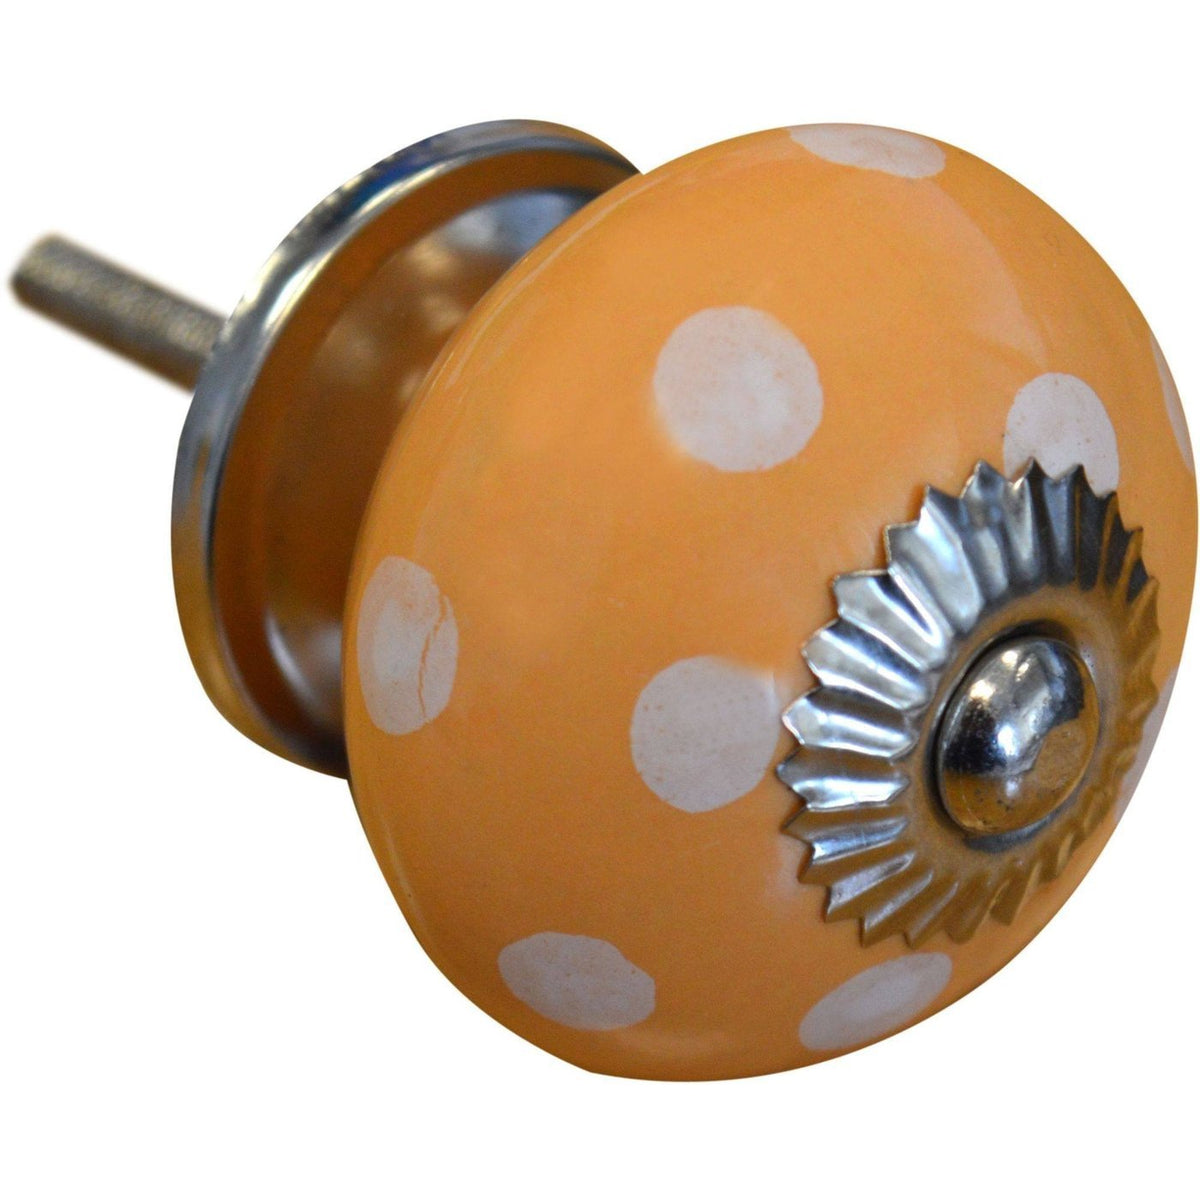 Nicola Spring Ceramic Polka Dot Door Knob and Handle - Orange and White